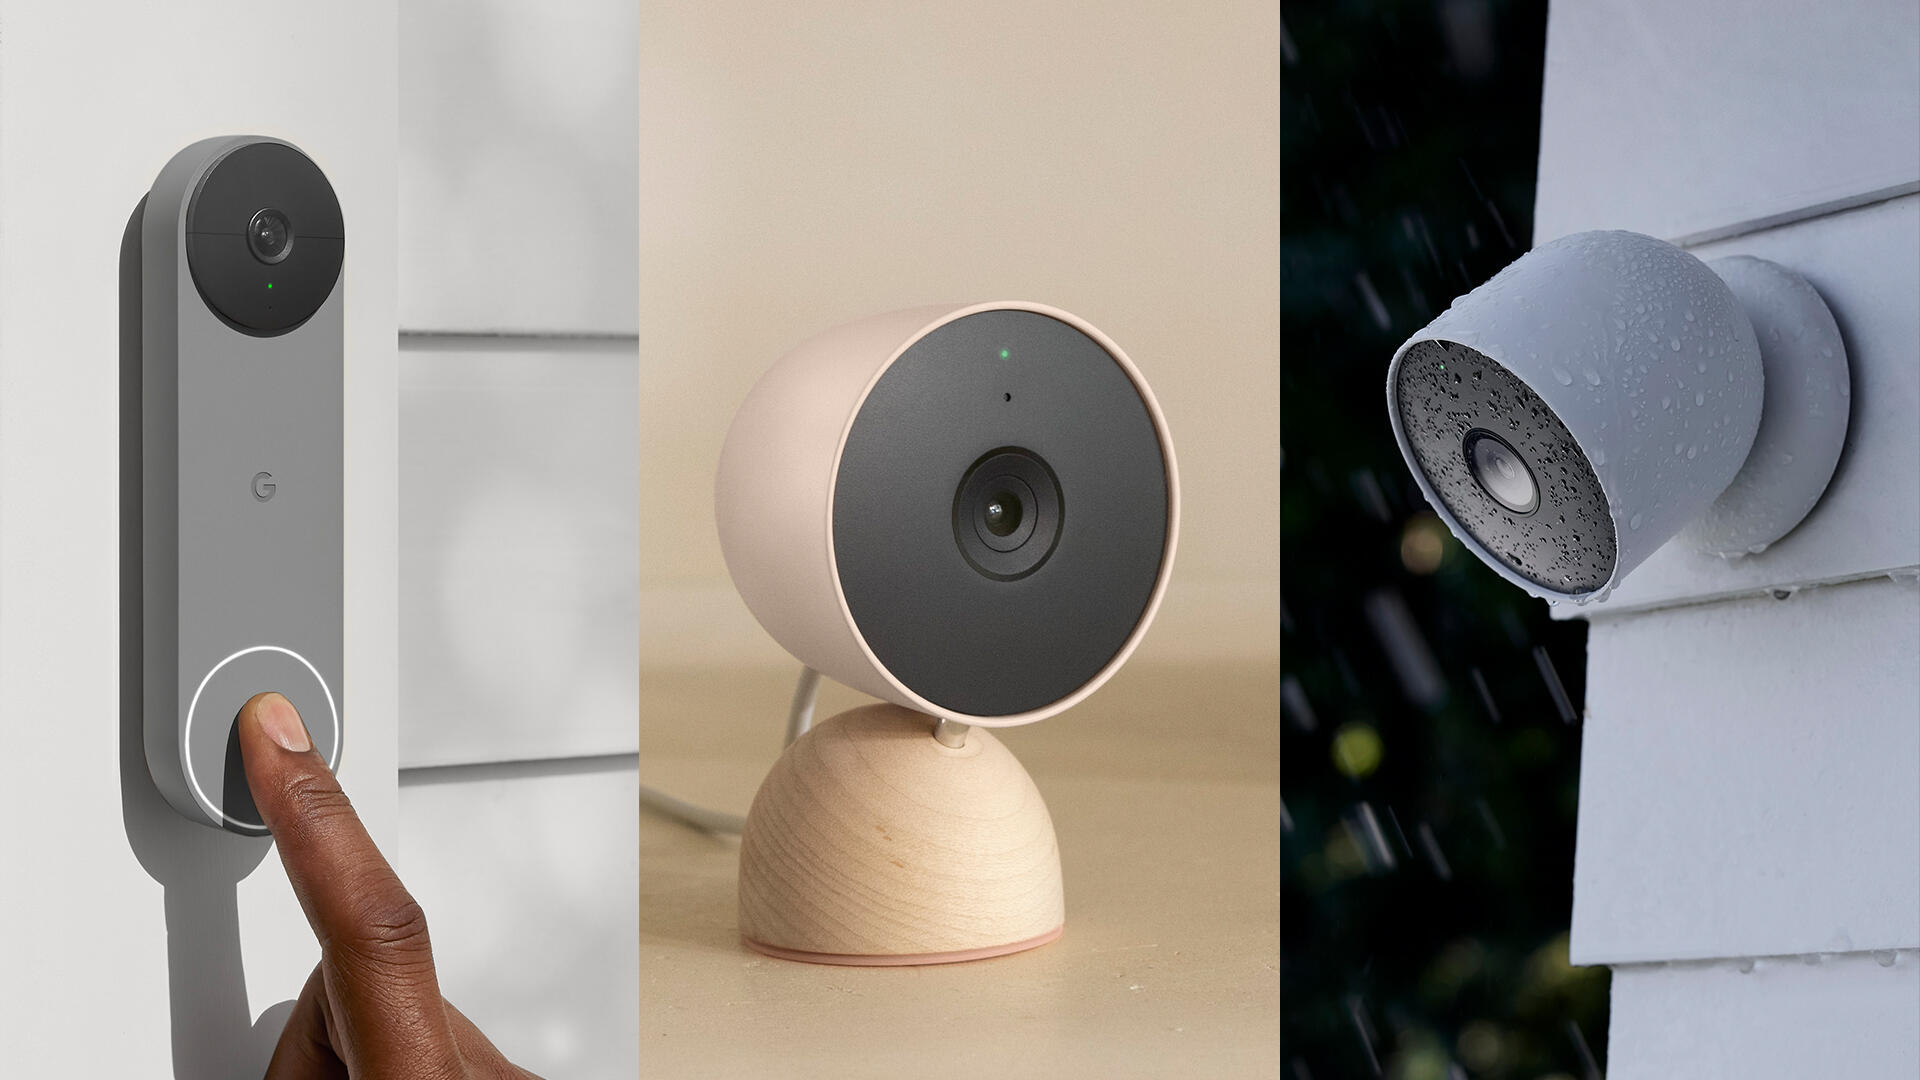 Google announces a new video doorbell and three new security cameras